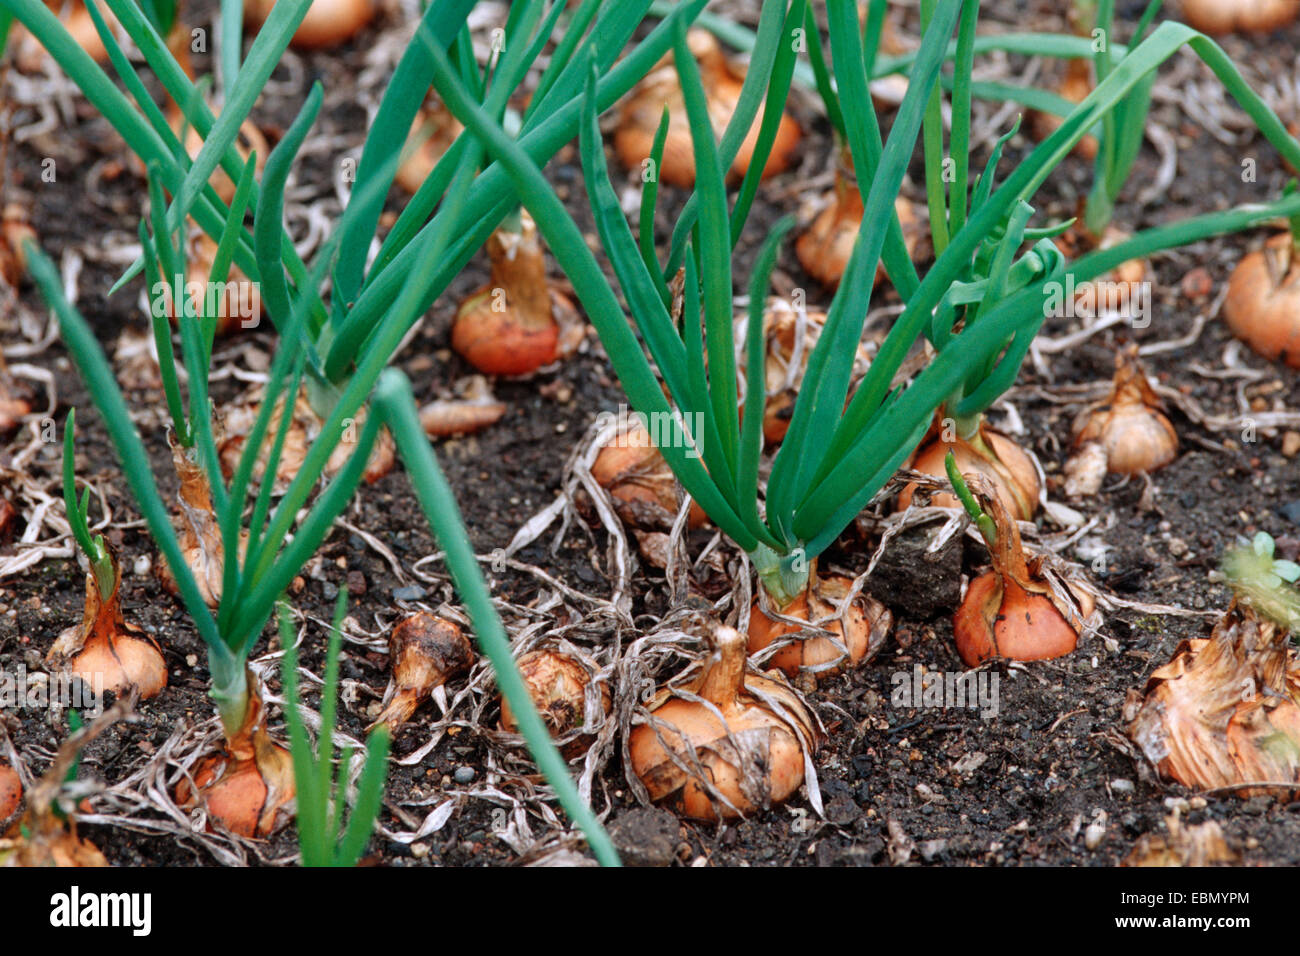 Garden onion, Bulb Onion, Common Onion (Allium cepa), vegetable patch - Stock Image